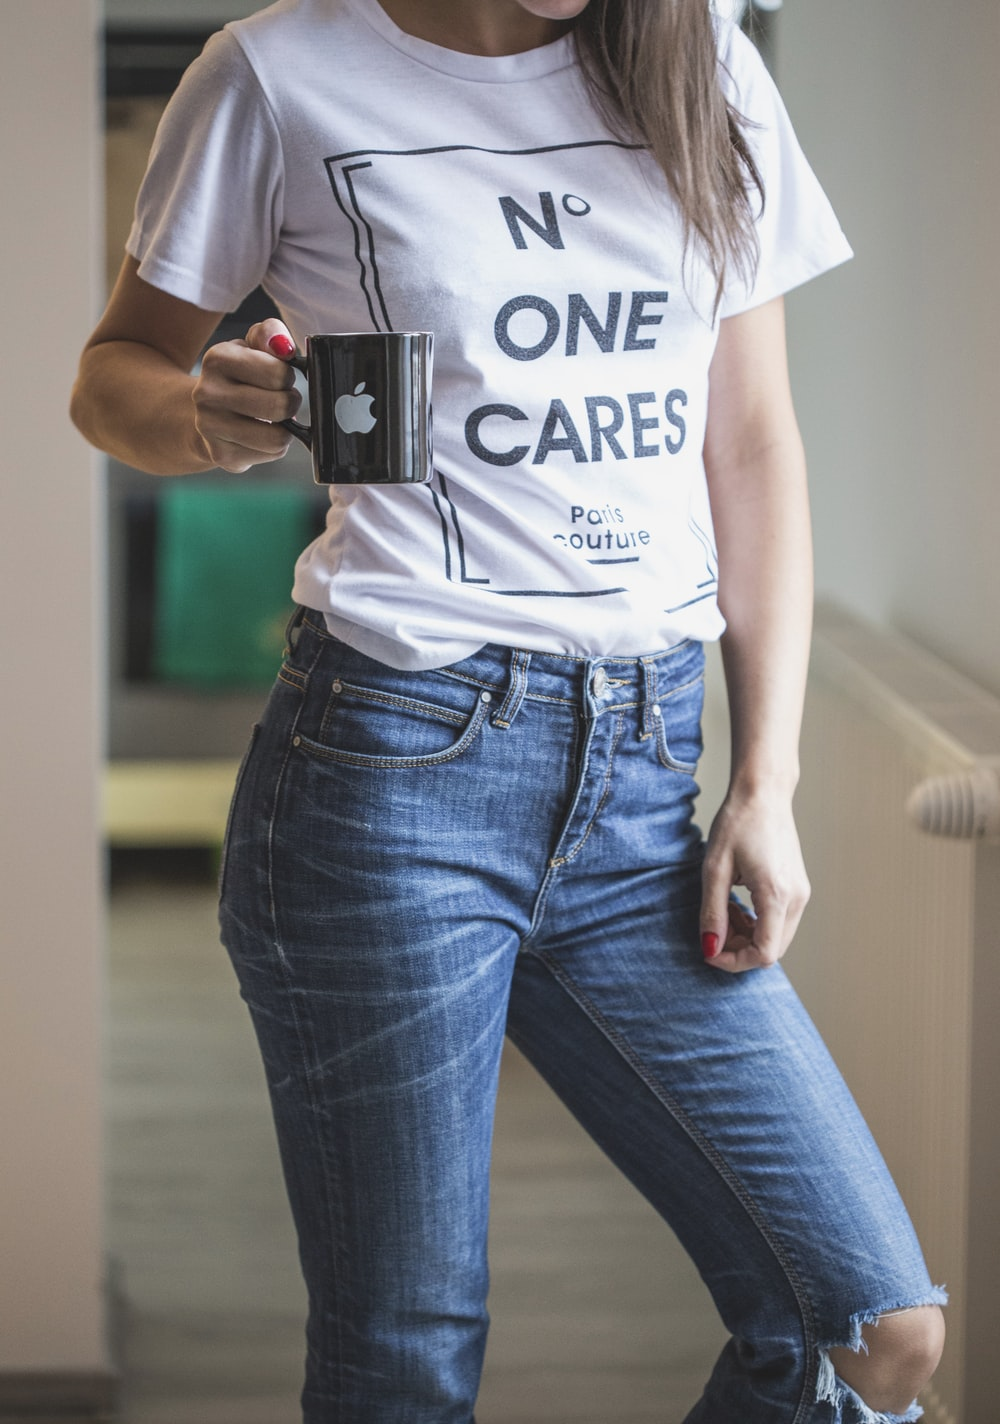 woman in white crew neck t-shirt and blue denim jeans holding black camera